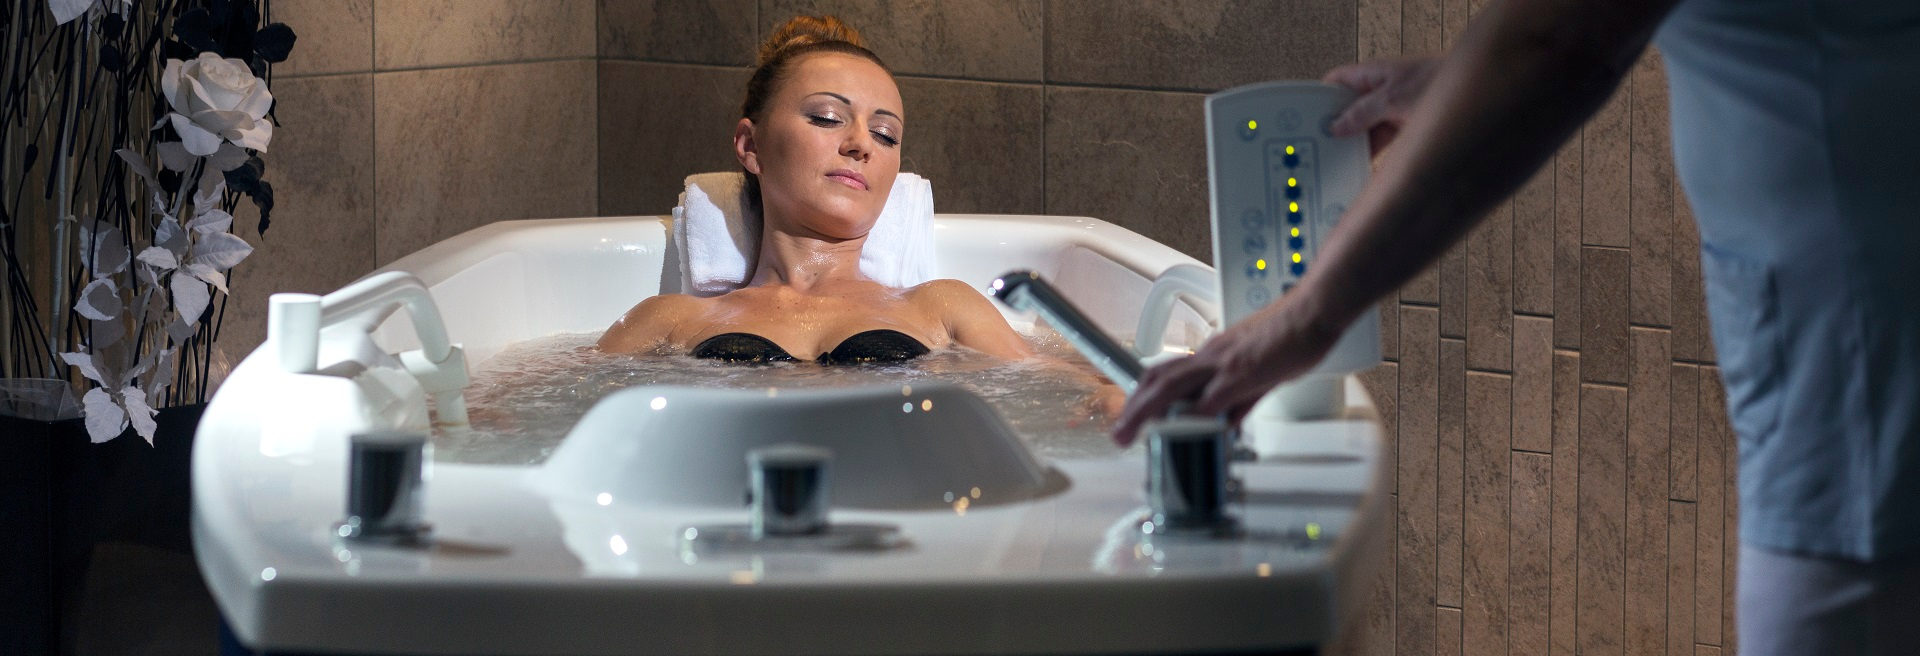 Koupele - Luxury Spa & Wellness VILA VALAŠKA Luhačovice